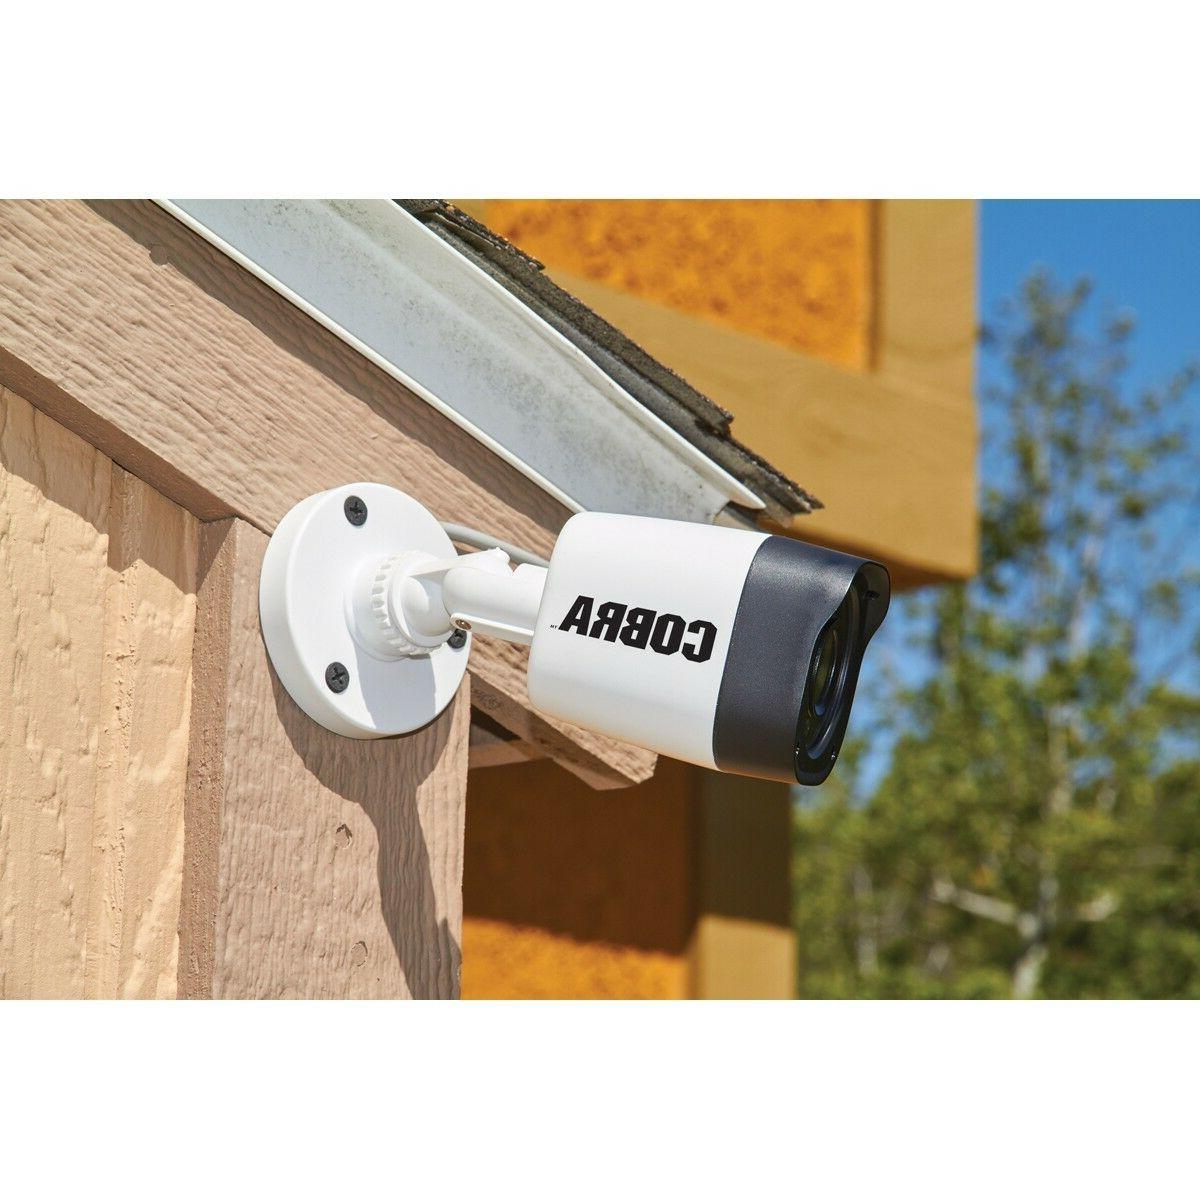 HD Color DVR Camera with Night Vision